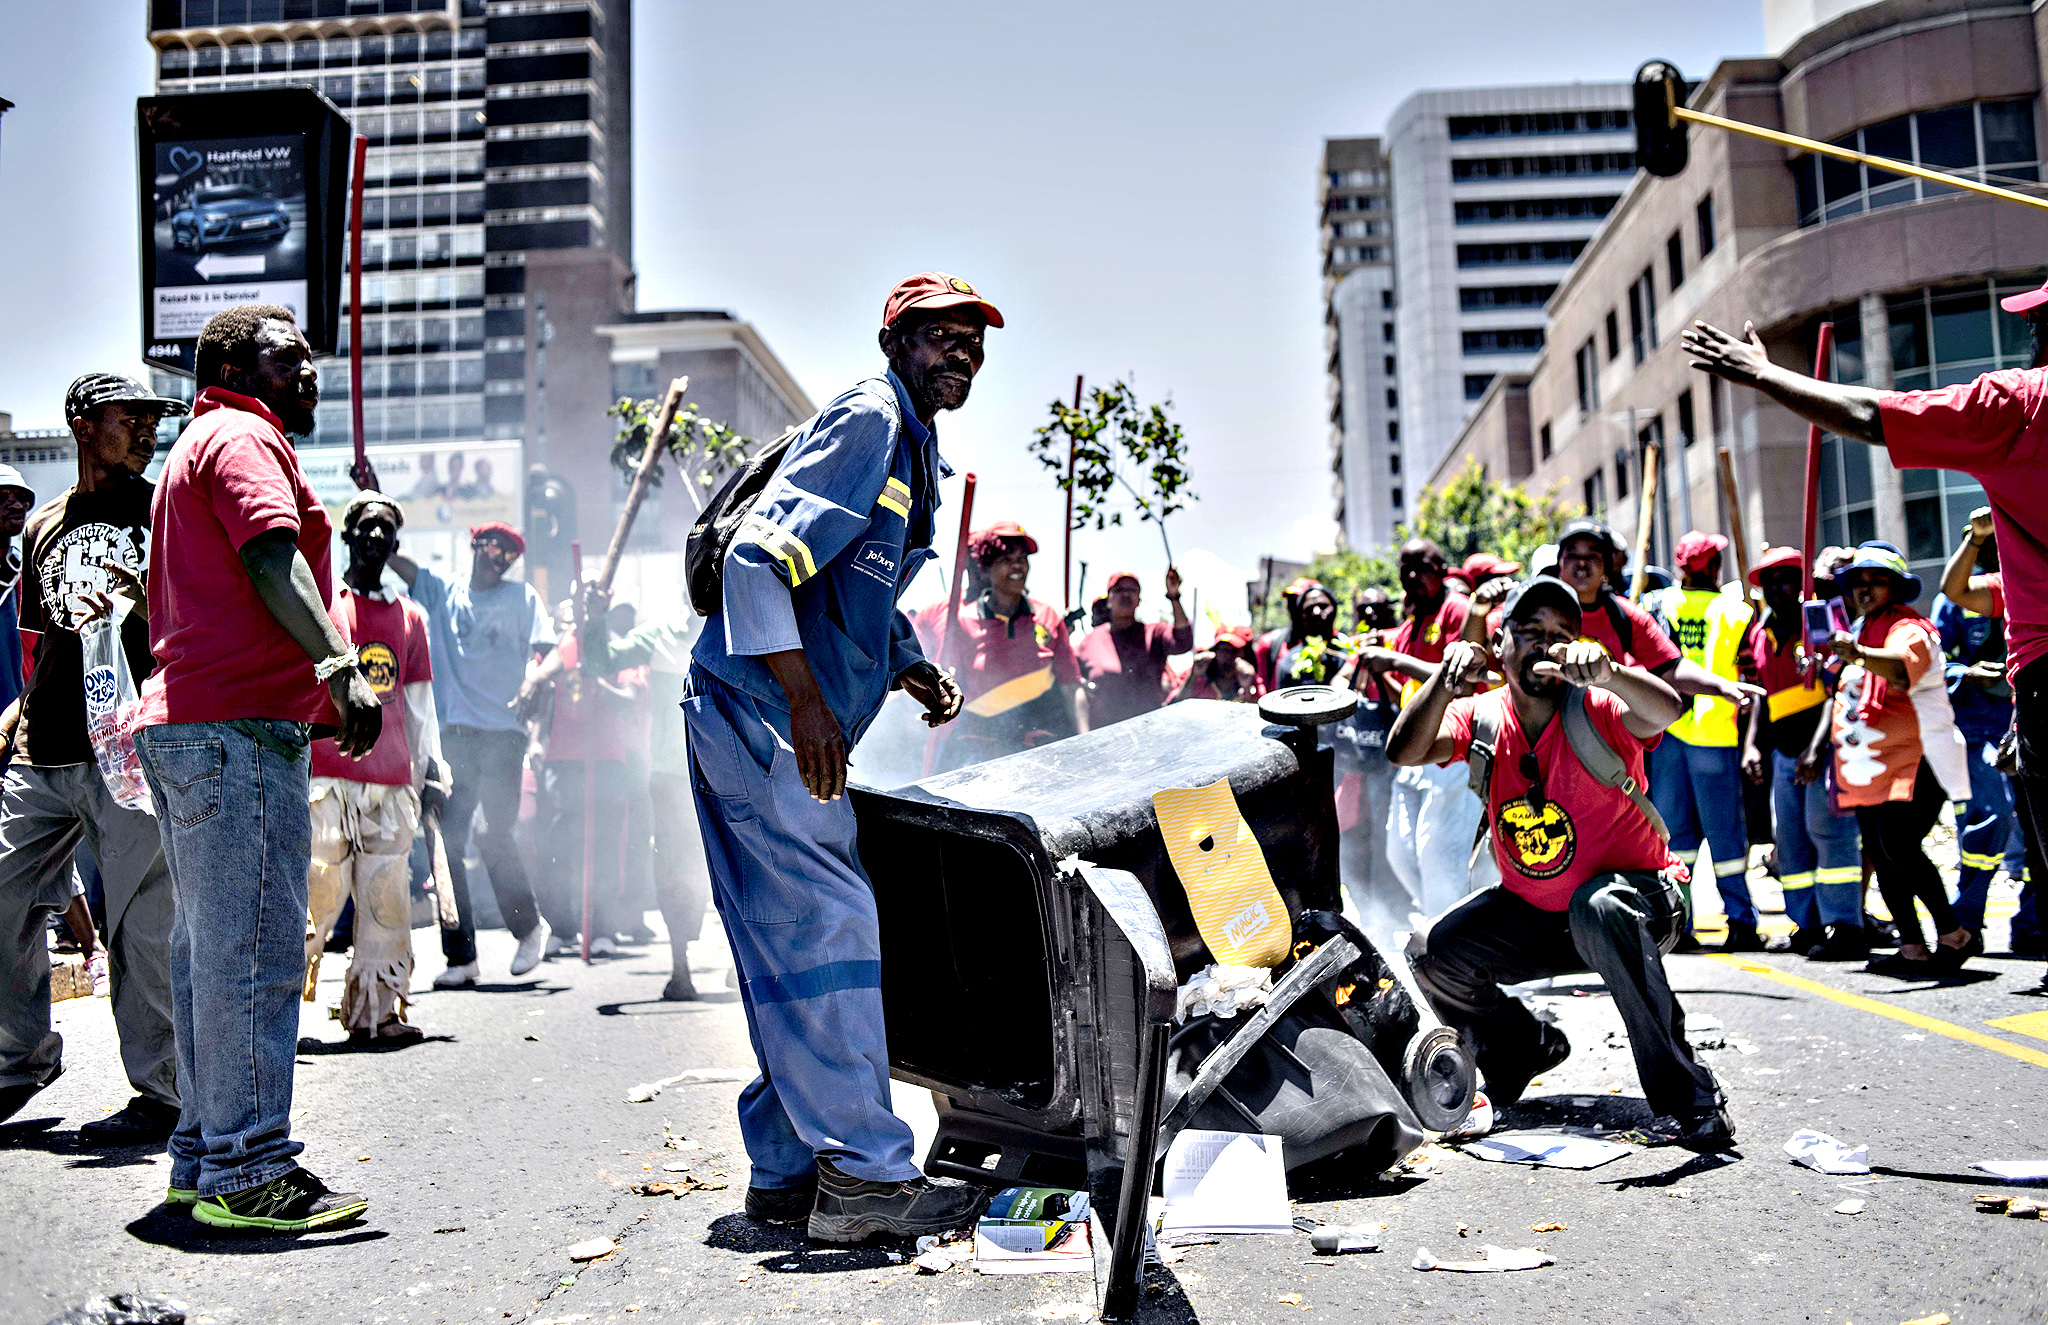 Members of the South African Municipal Workers' Union (SAMWU) protest in front of the Nelson Mandela Bridge in Braamfontein, Johannesburg, on November 24, 2015. SAMWU members marched to demand increased wages, better working conditions and new recruitments to reduce municipal water management vacancy rate in water-stressed municipalities in light of the current drought in South Africa.